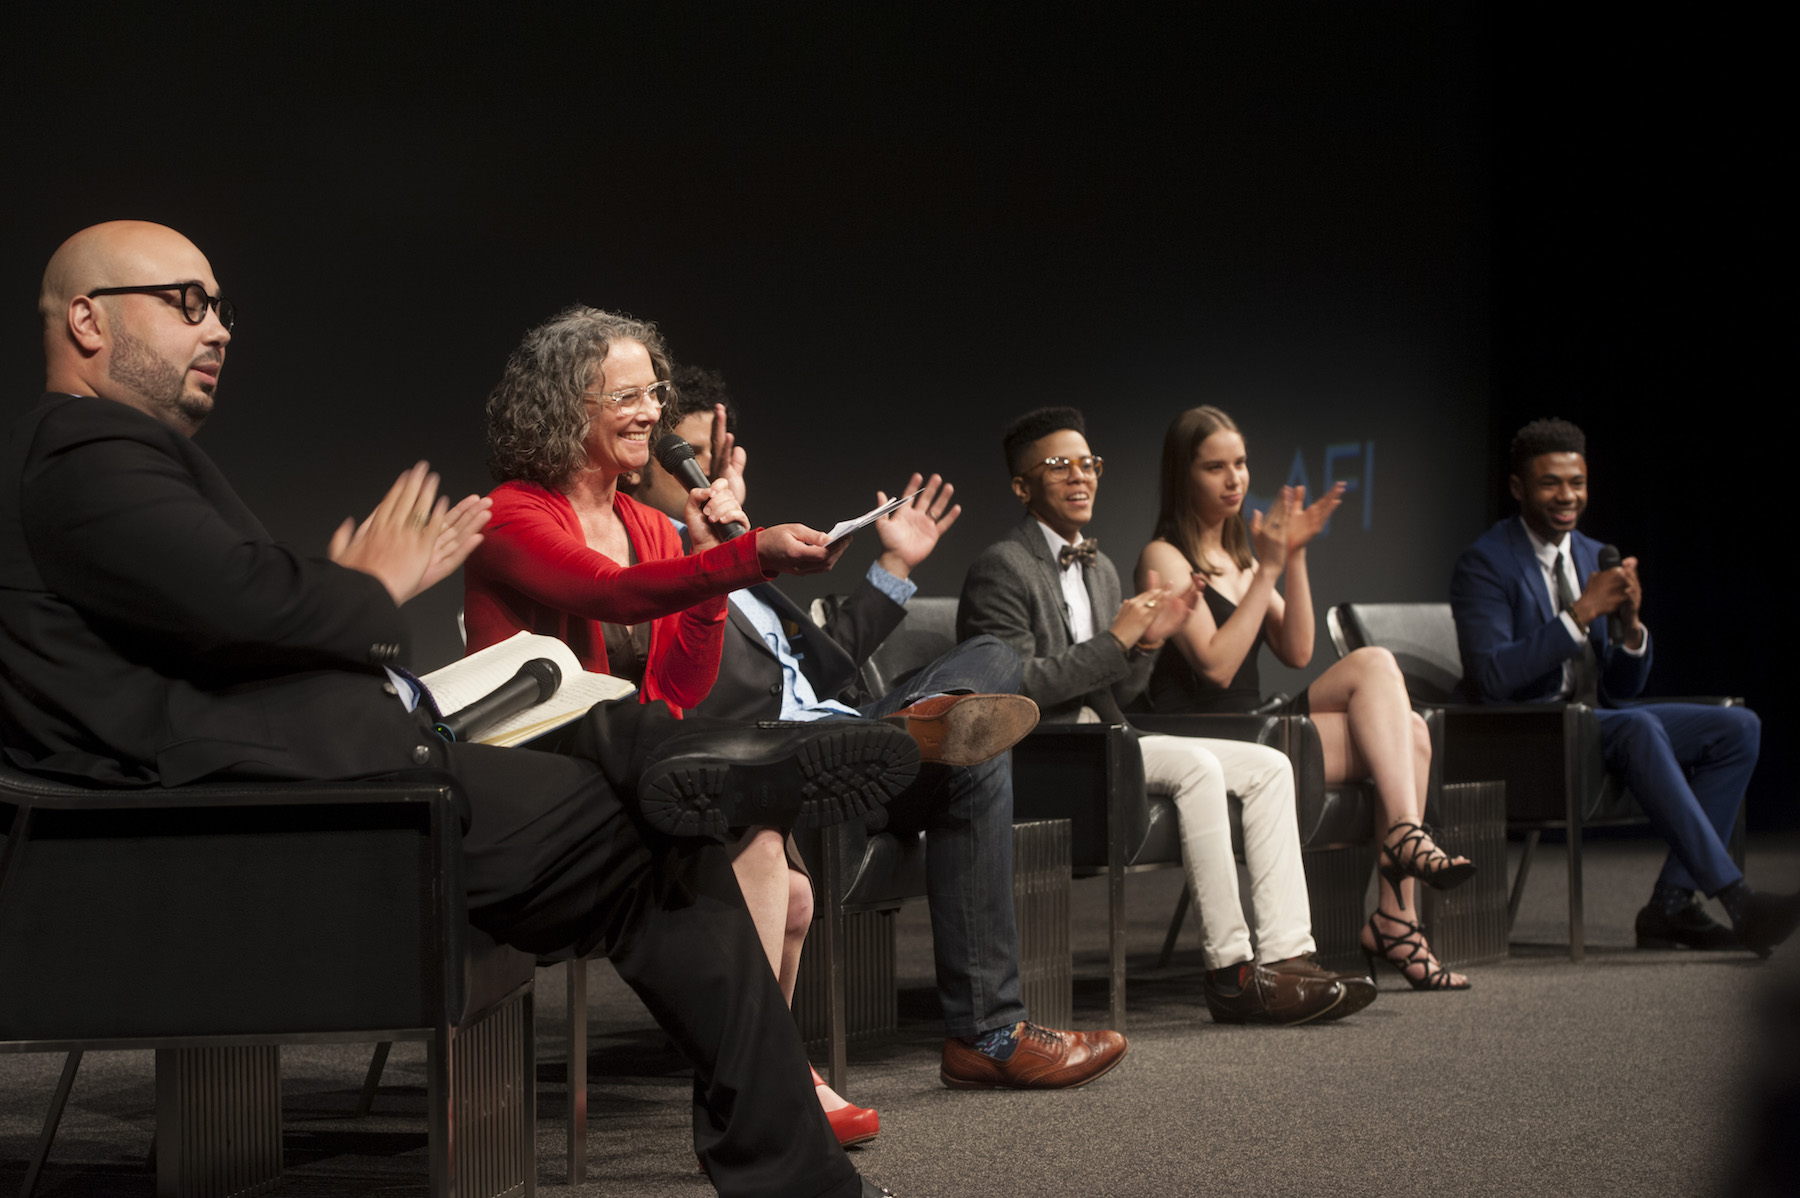 q&a panel for personal statement filmmakers